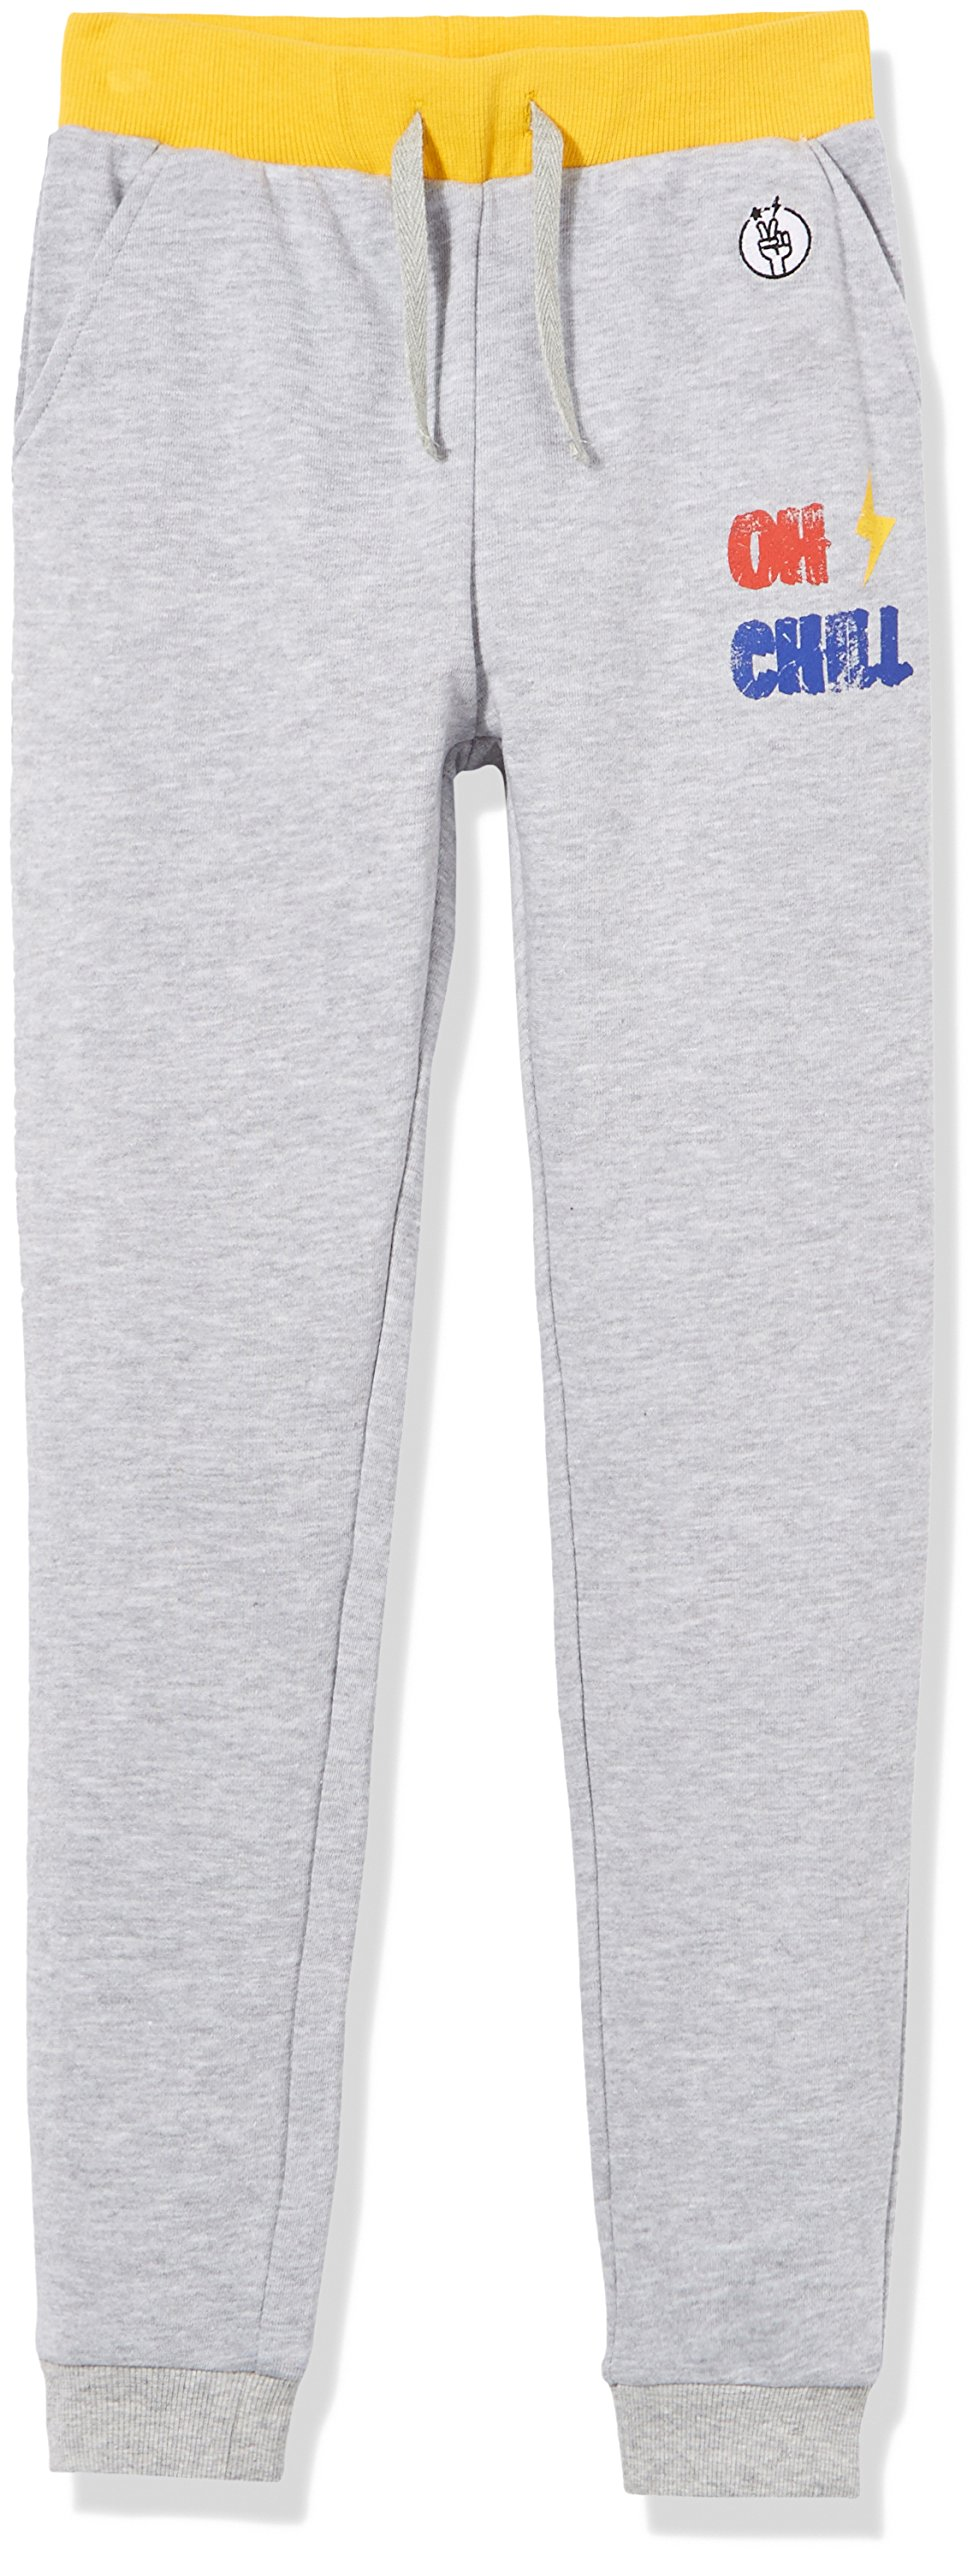 Kid Nation Kids' French Terry Jogger for Boys Or Girls XL Gray